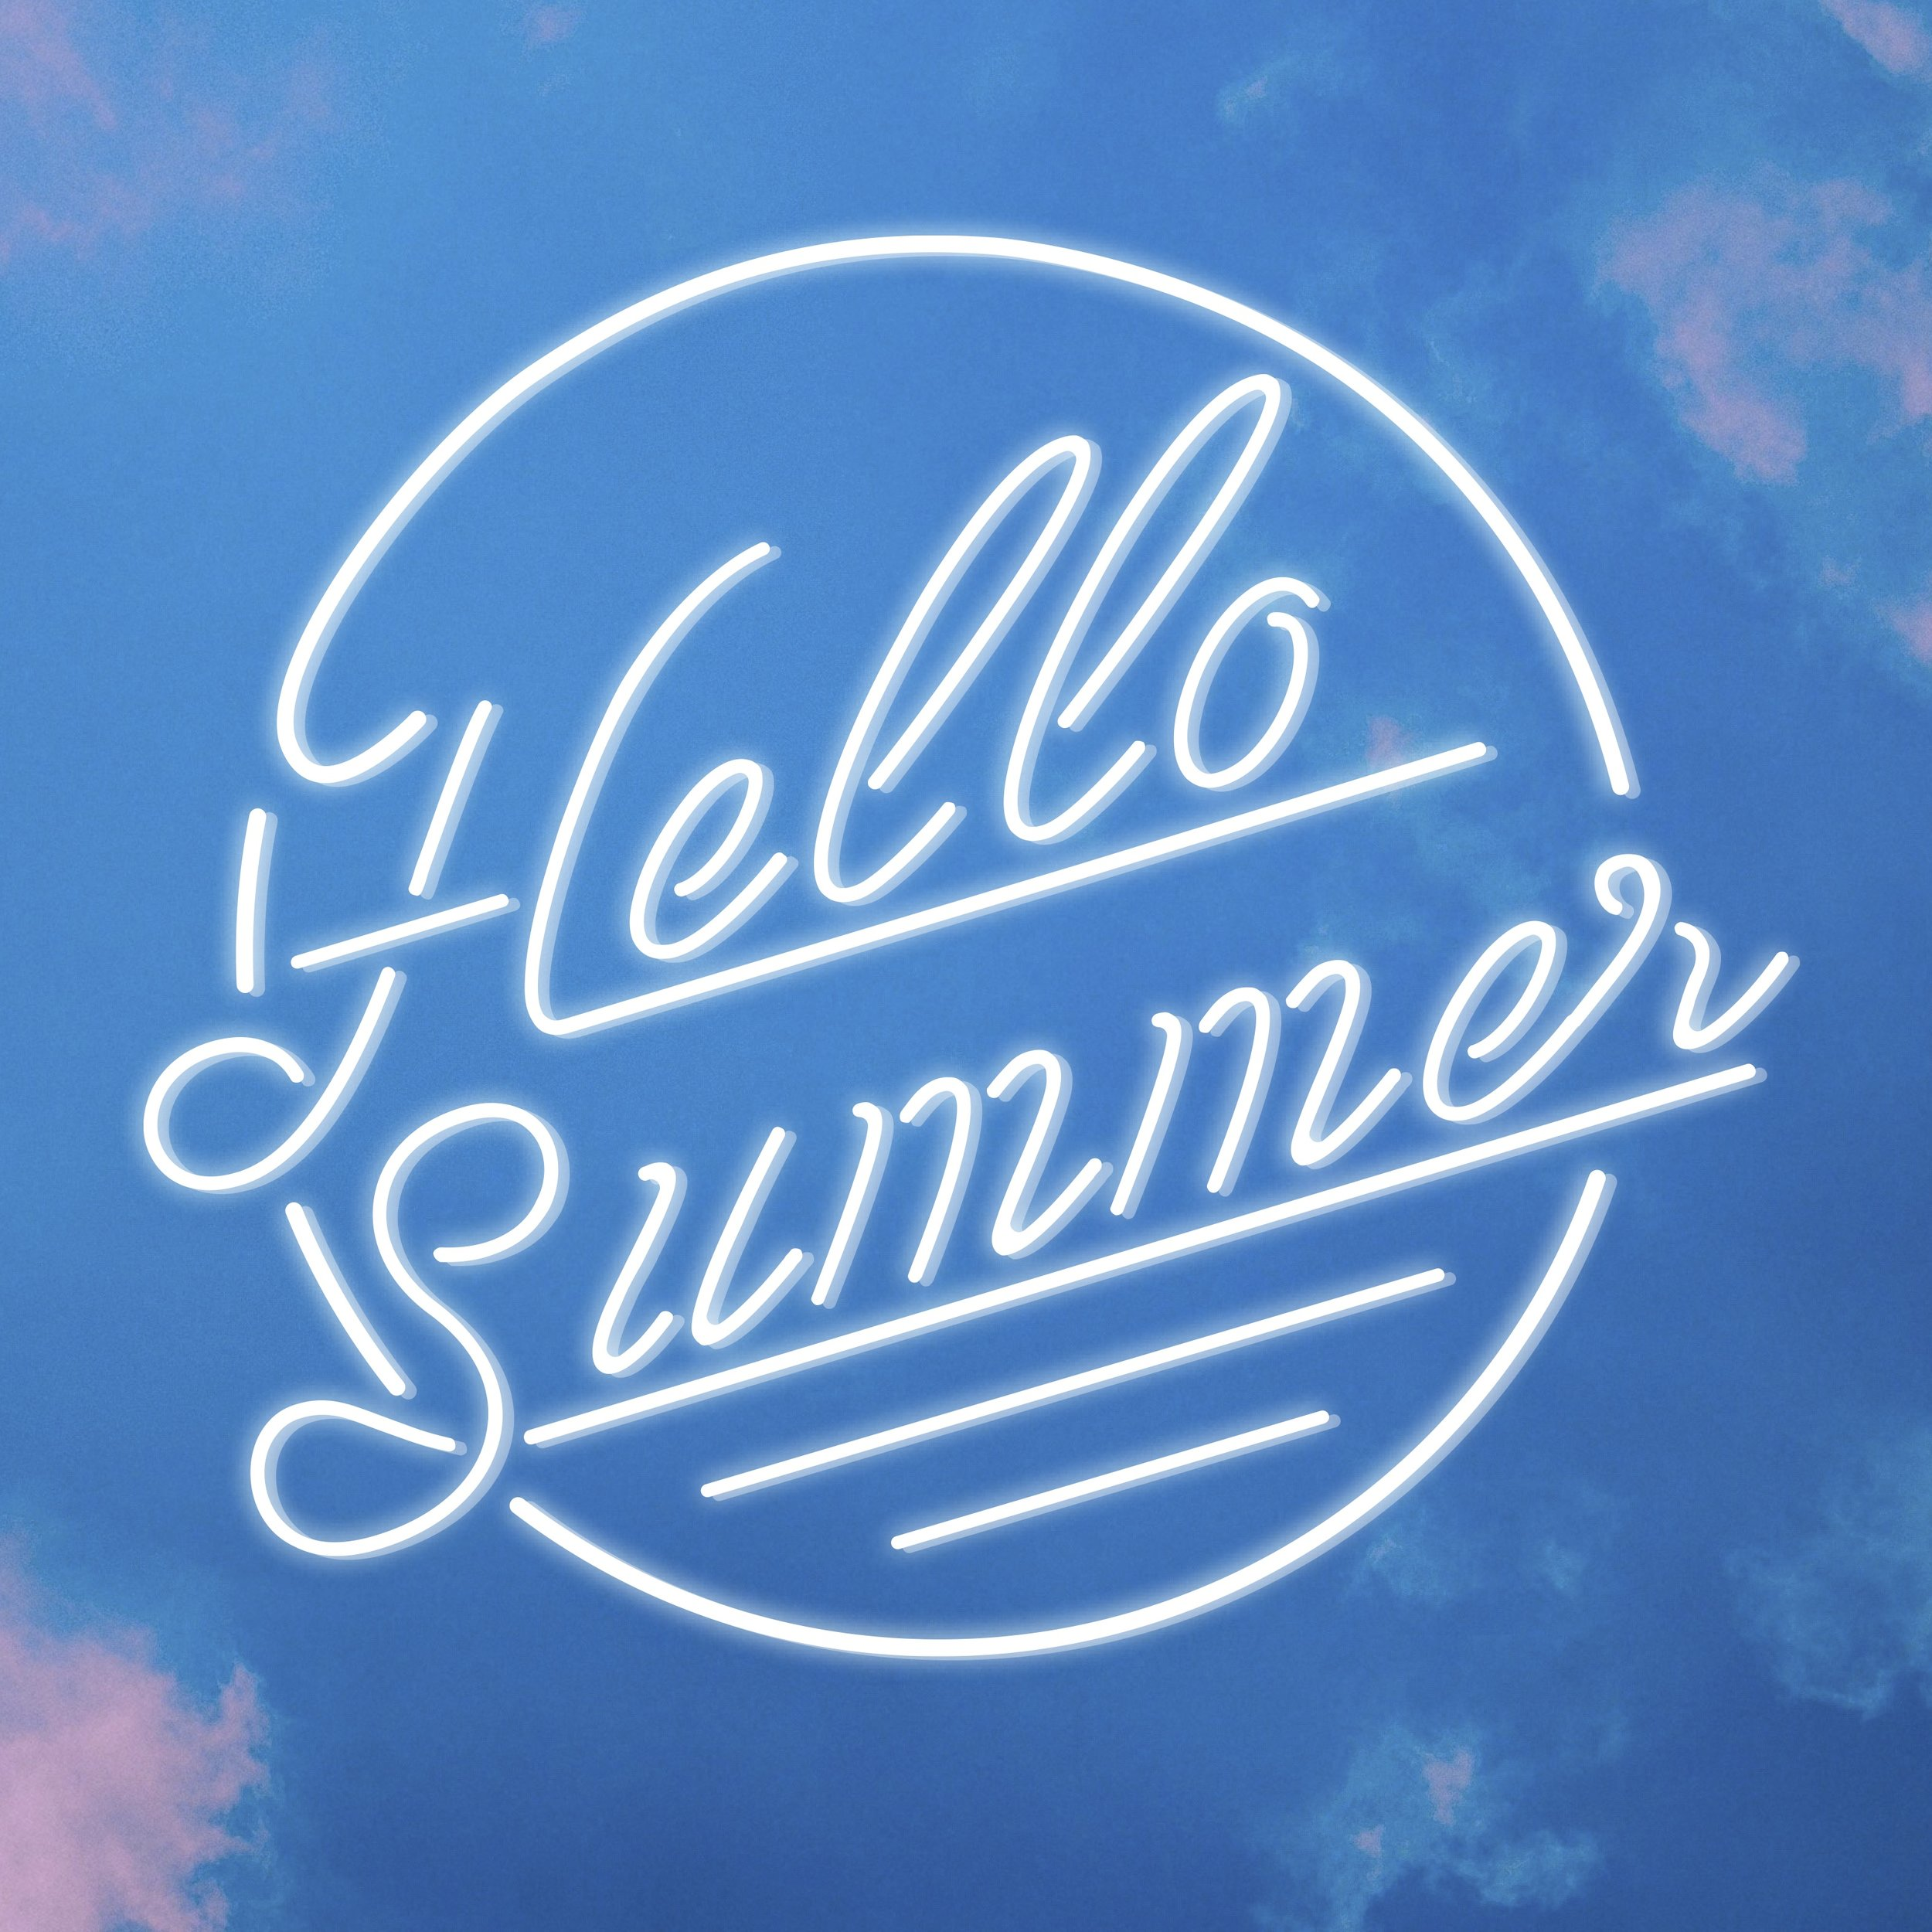 June 21 - #FirstDayofSummer   Search:  Hello Summer  The 1st official day of Summer, and I'm already out by the pool. Well my office is right by (name) Apartments pool, so close enough? #FirstDayofSummer